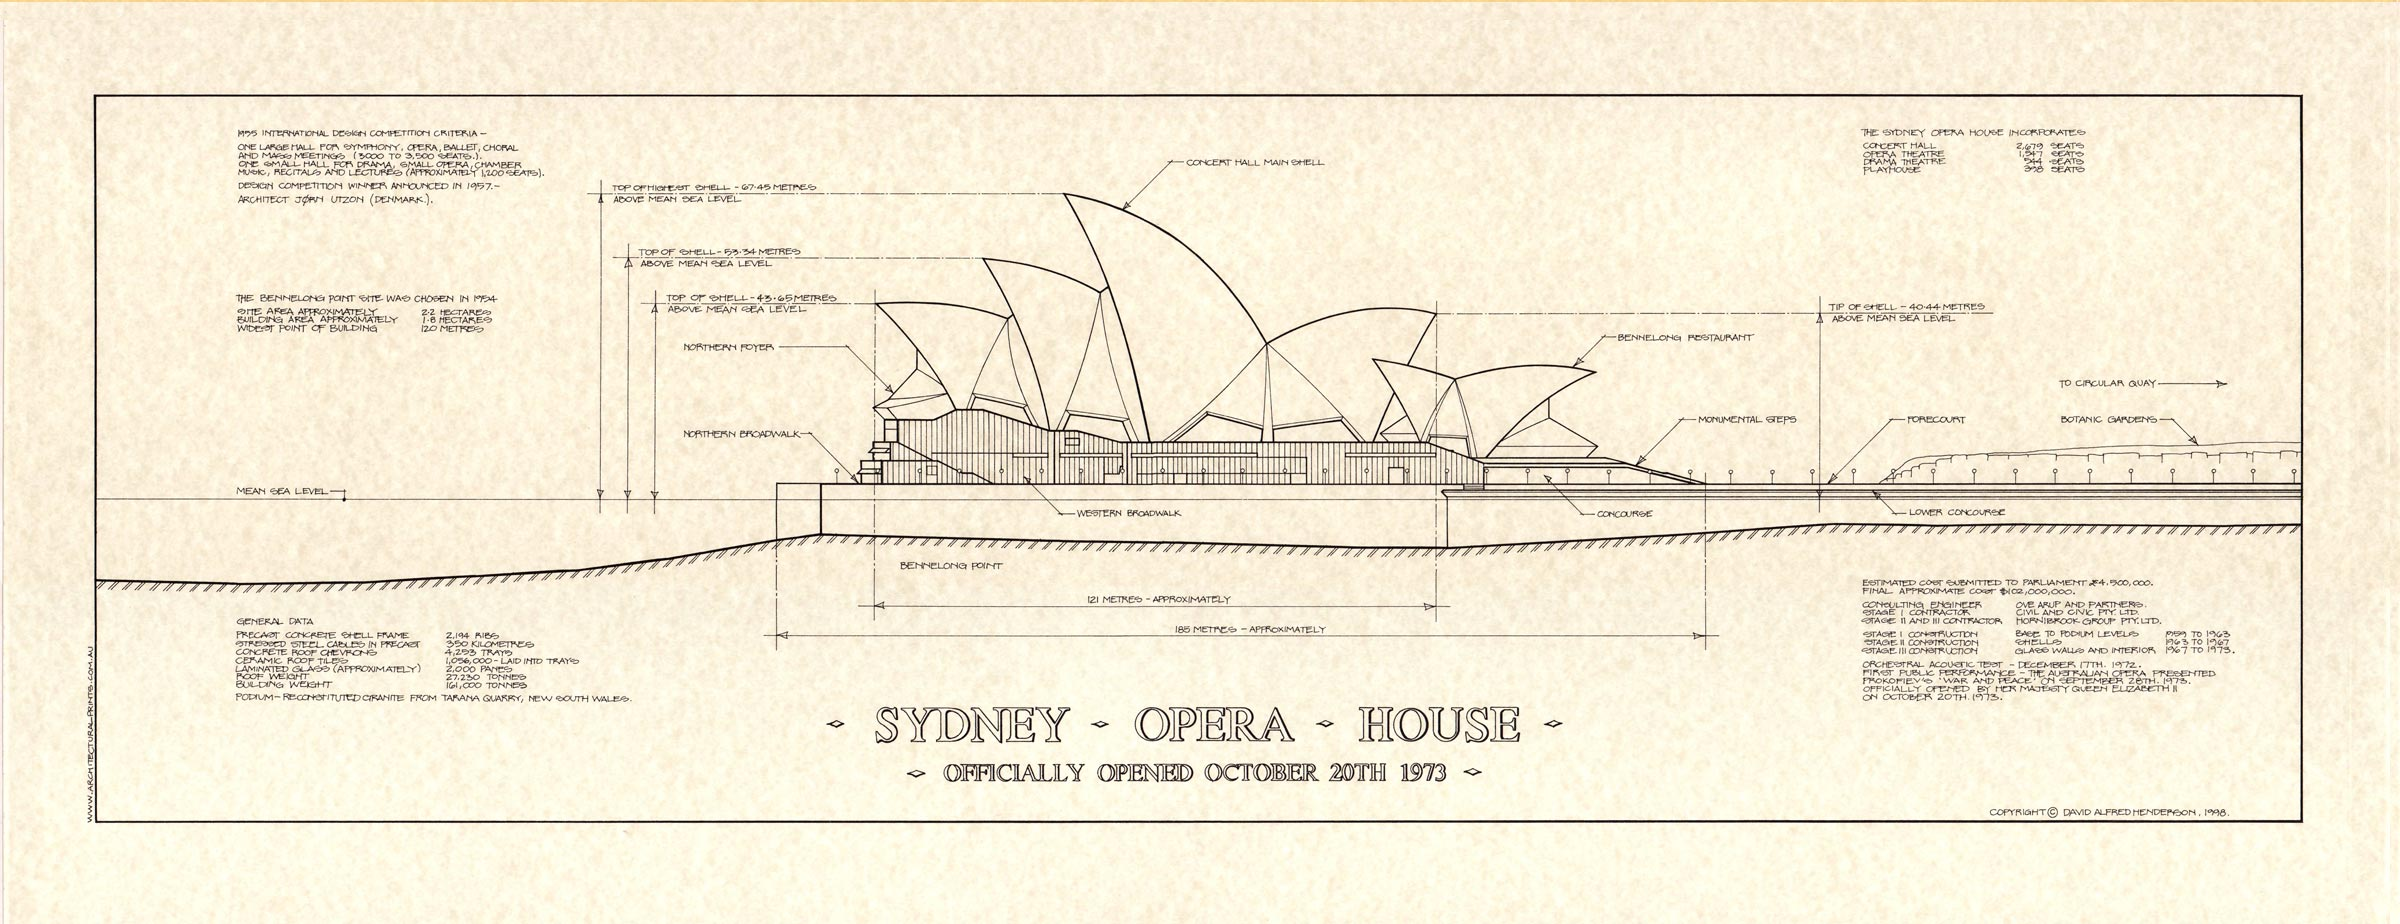 Sydney opera house print architectural prints for Print architectural drawings